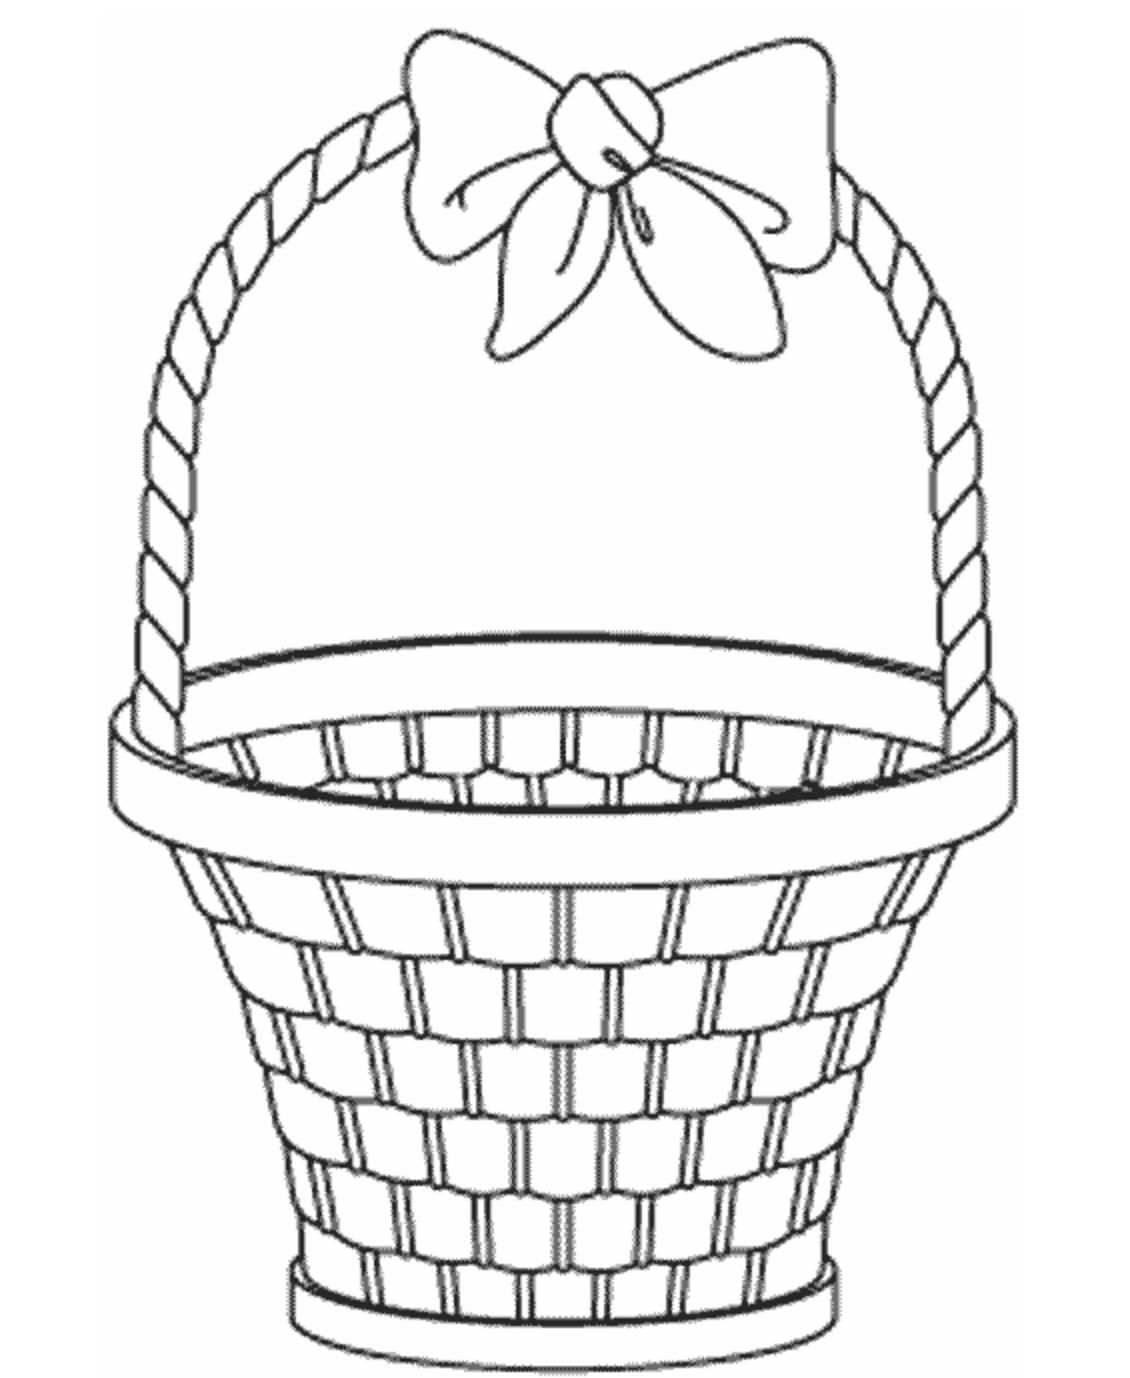 Pin By Divendra Vitoldas On Art And Craft In 2020 With Images Easter Basket Printable